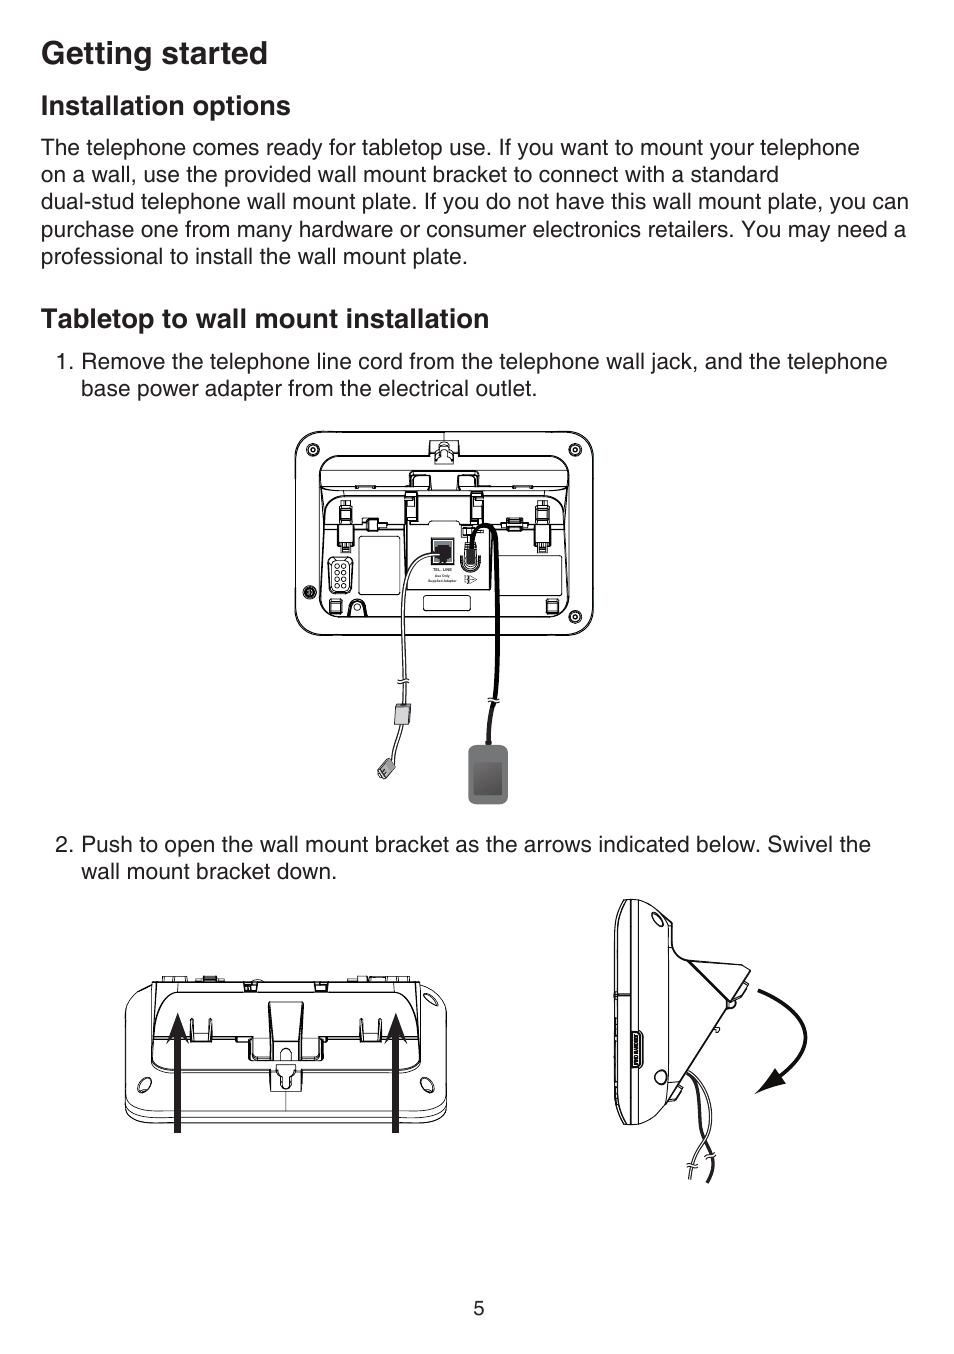 Perfect Connecting Phone Wires To Wall Jack Sketch - Wiring ...